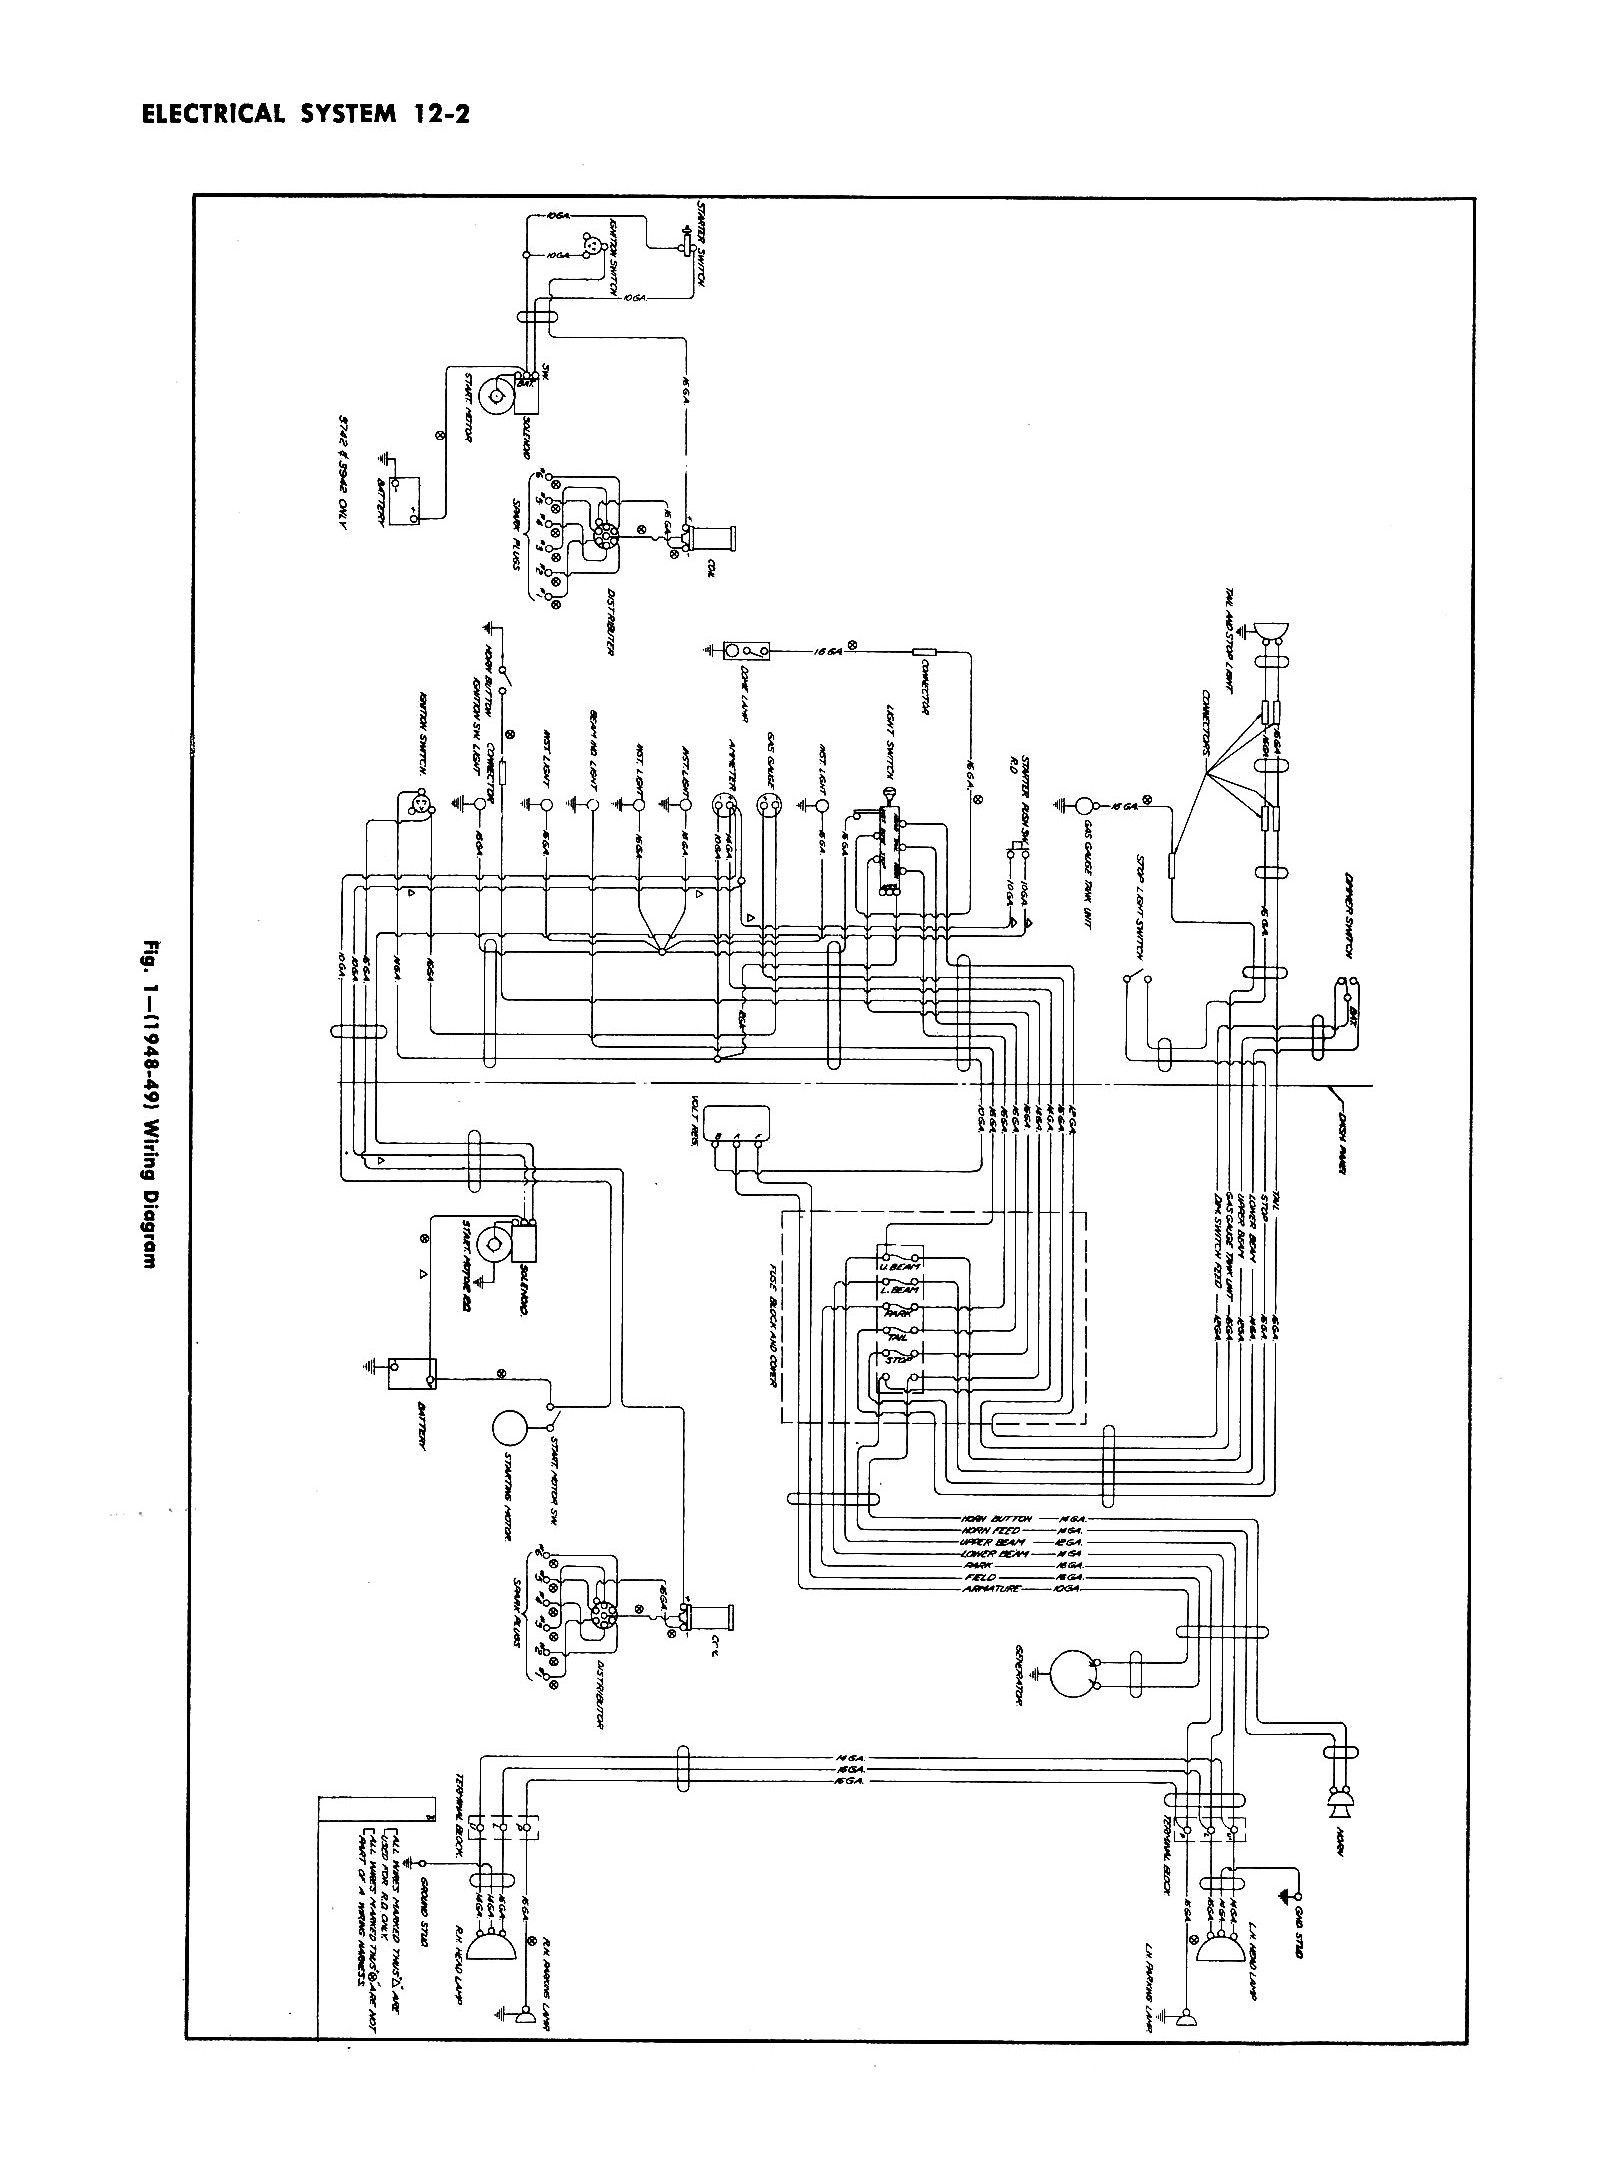 New Wiring Diagram Car Charging System